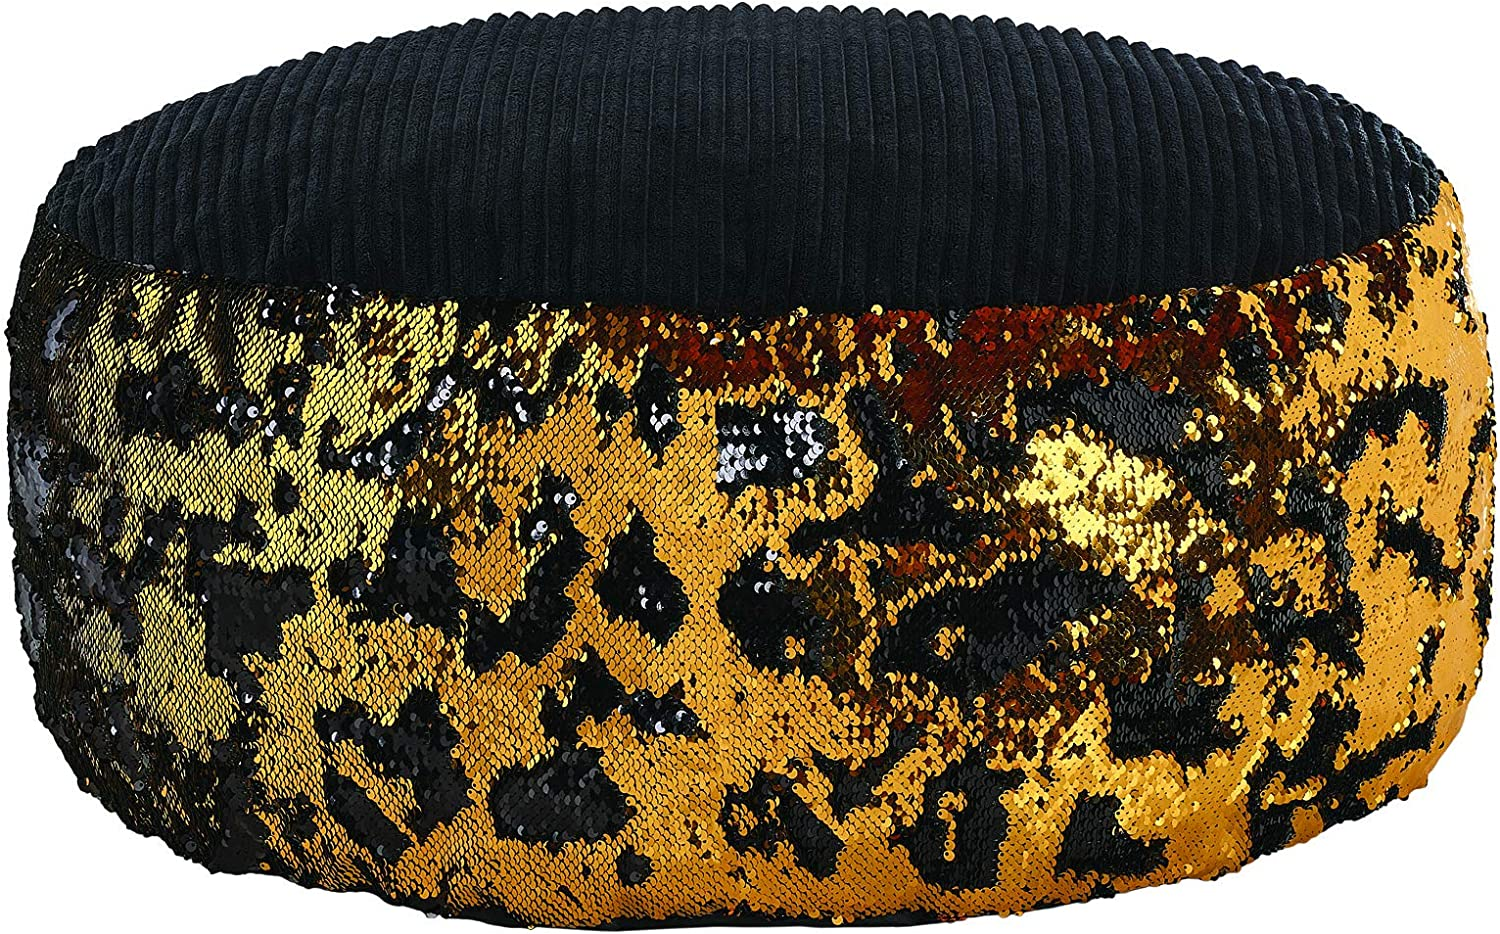 Animal Adventure Wild for Style Popular overseas Sequin Gold Pouf sold out Black